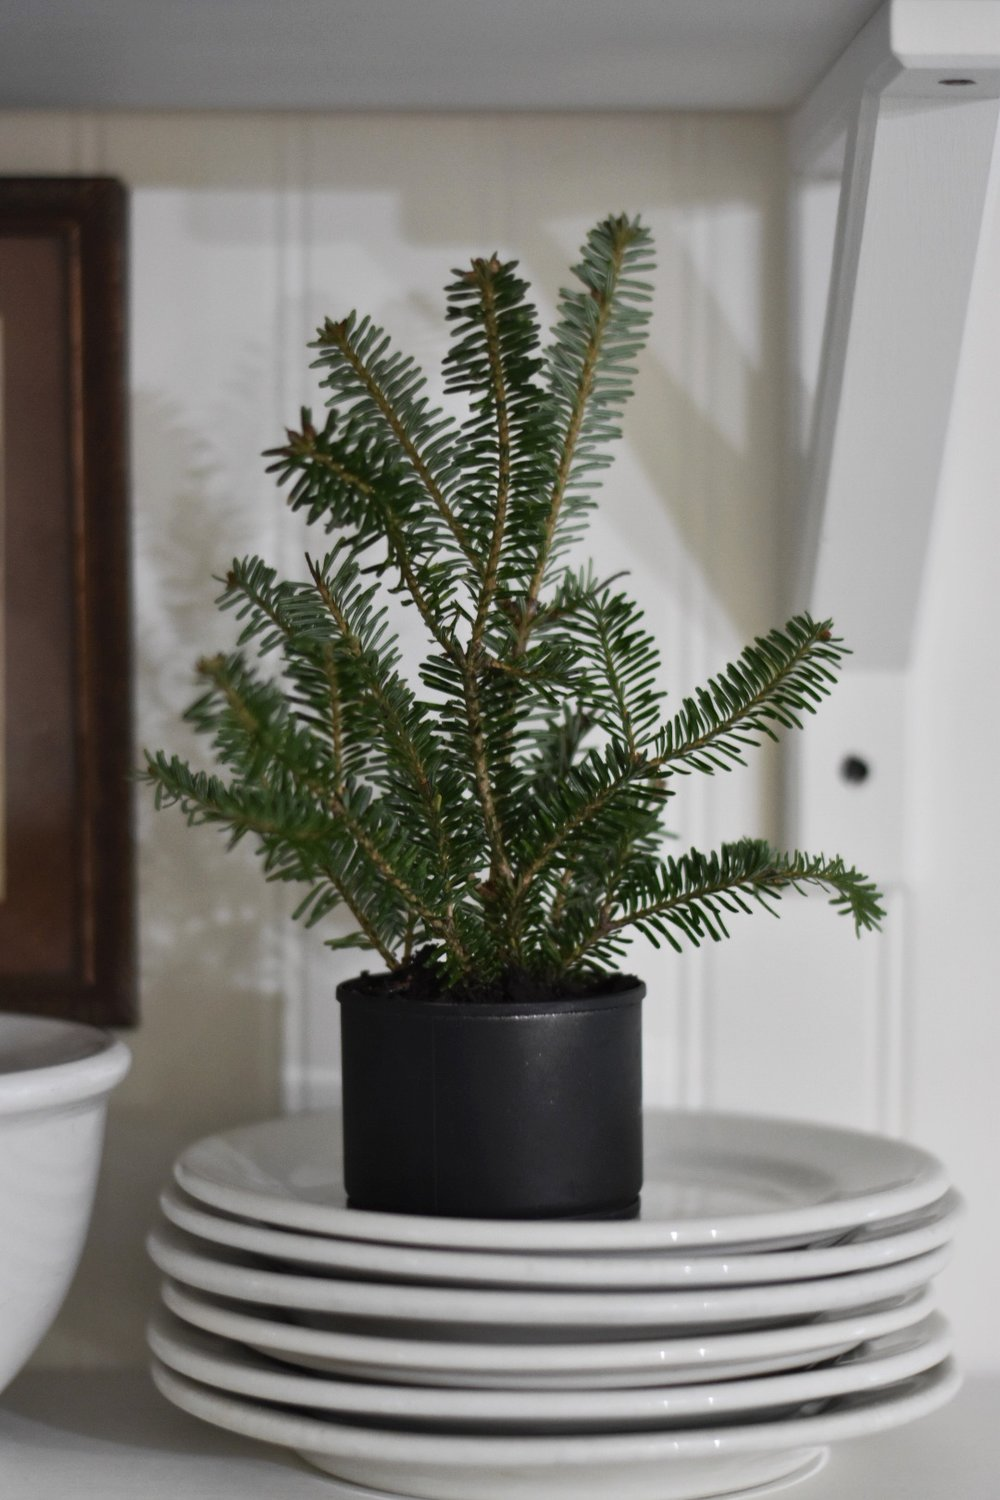 Homemade Christmas Decor Tiny Christmas Tree in a Tin Can - Rocky Hedge Farm